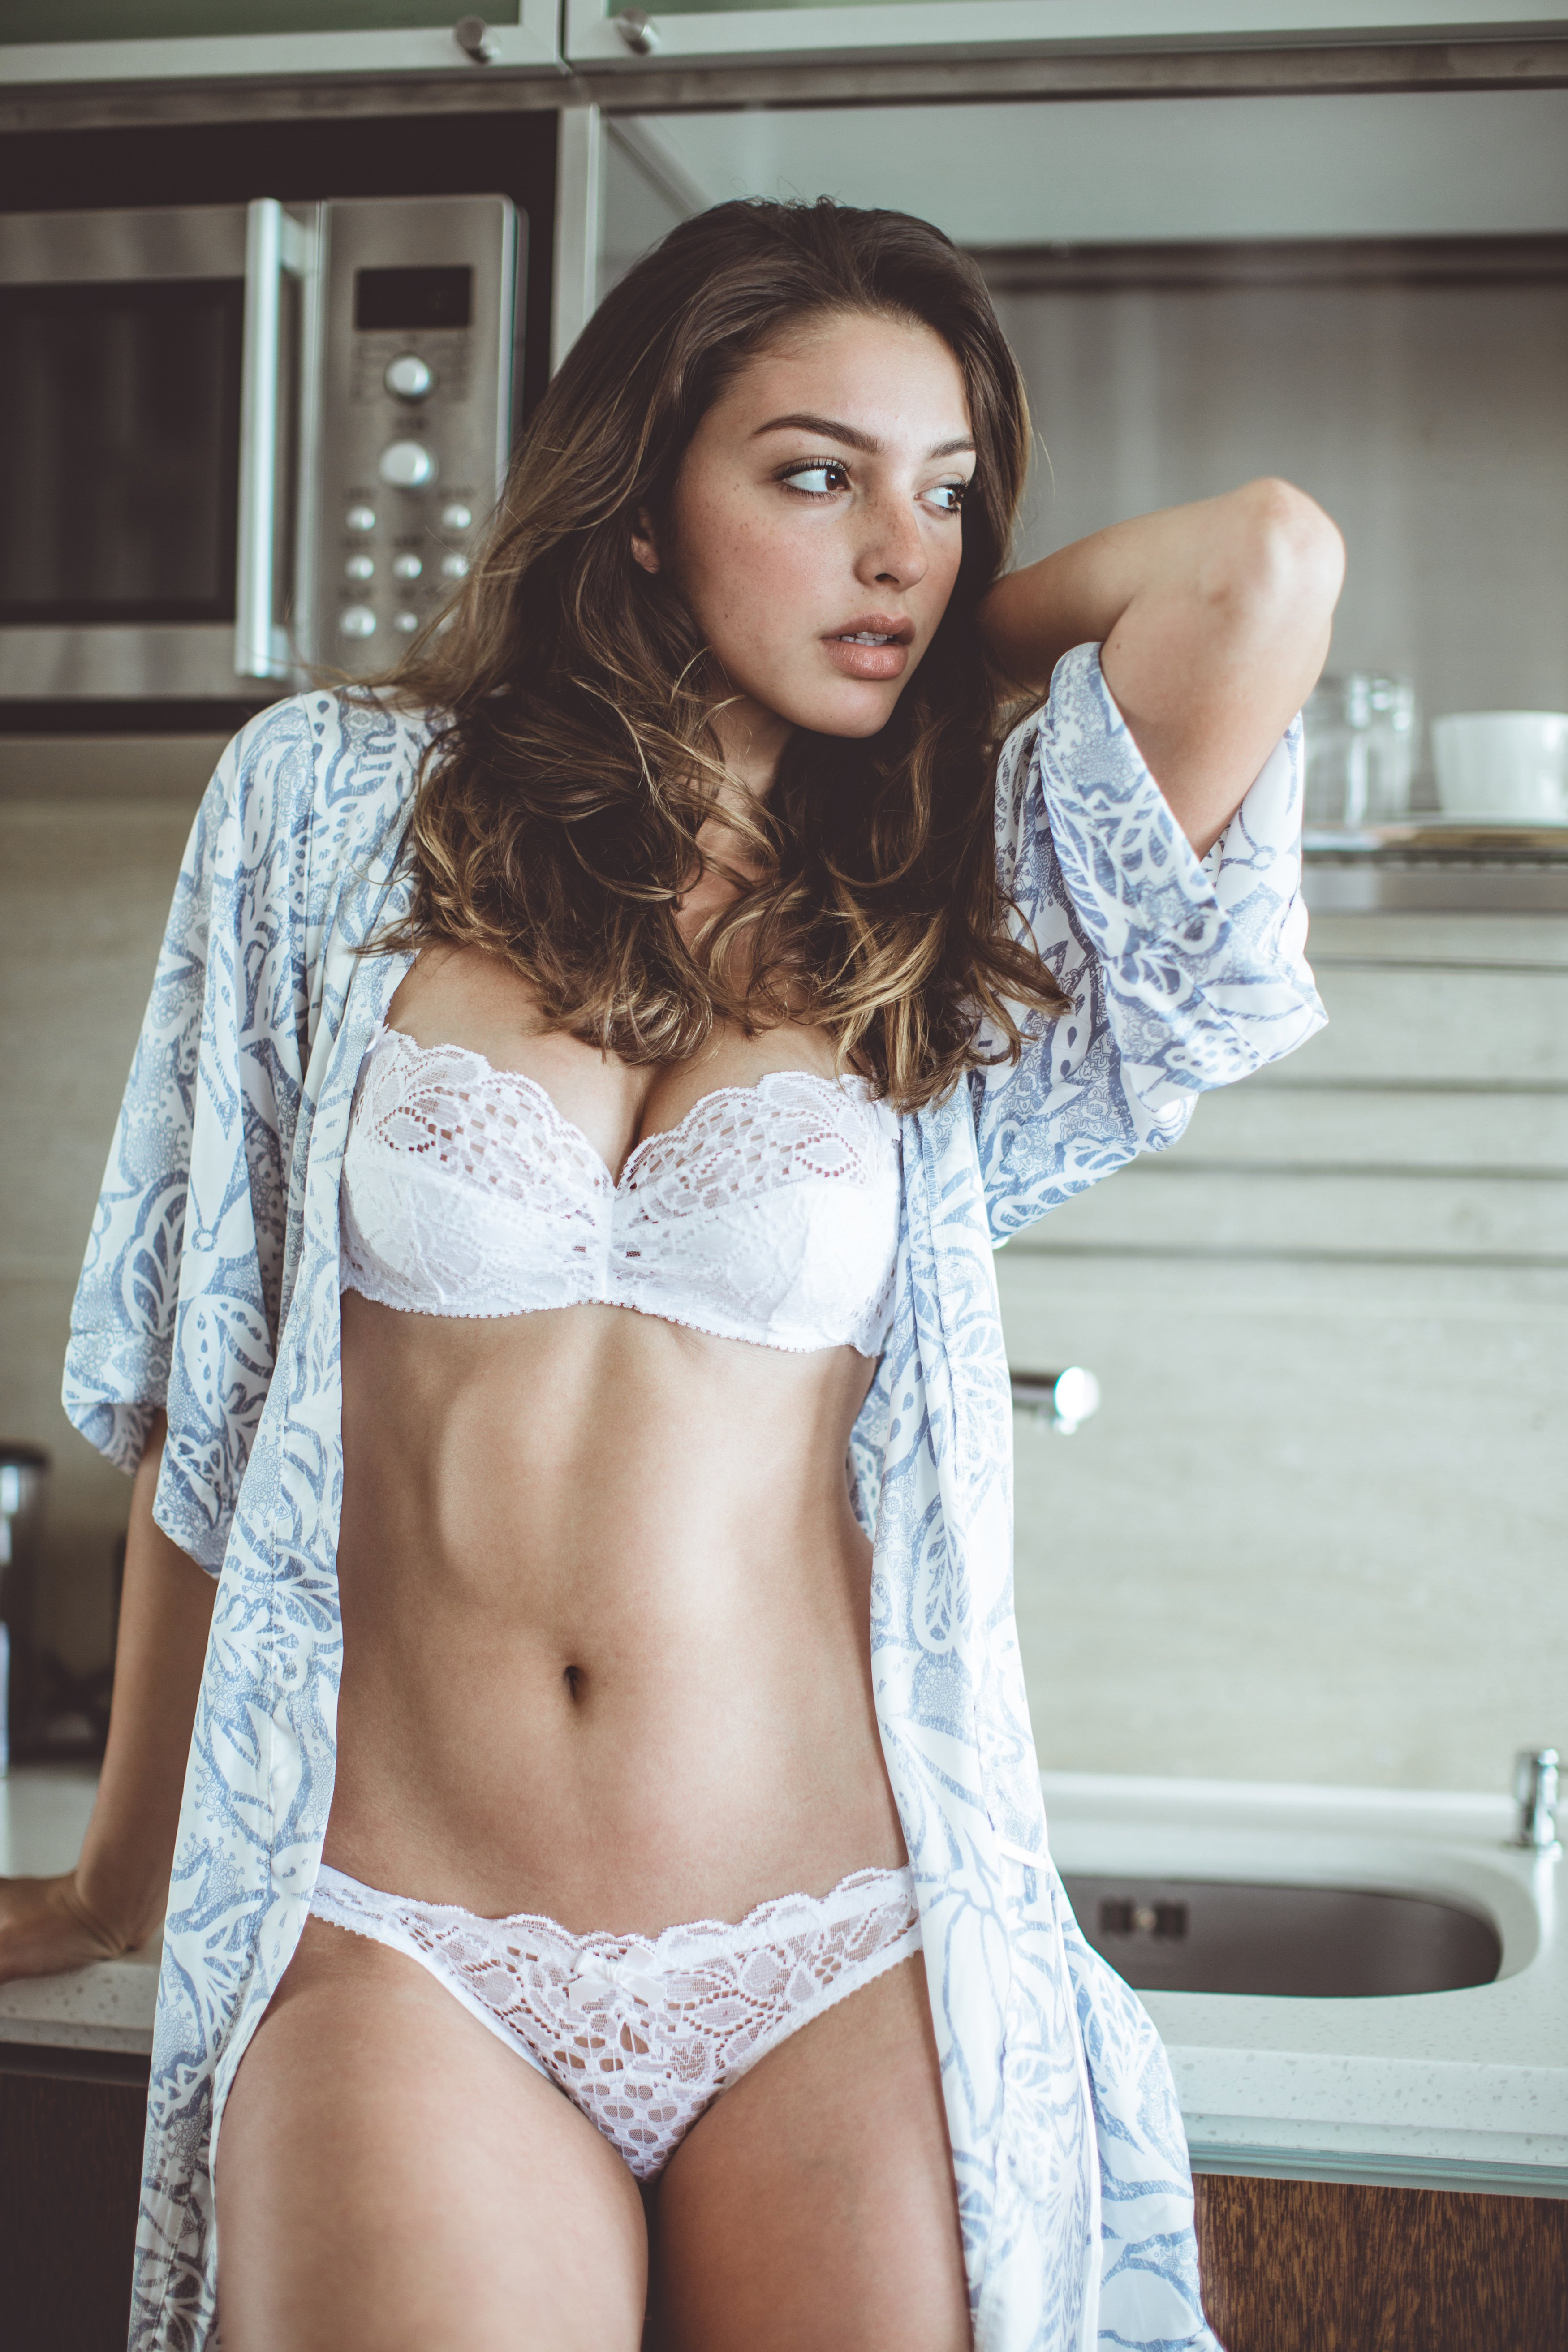 Celine Farach by Dicky Manana photography shaven freckles lingerie Bewbs!